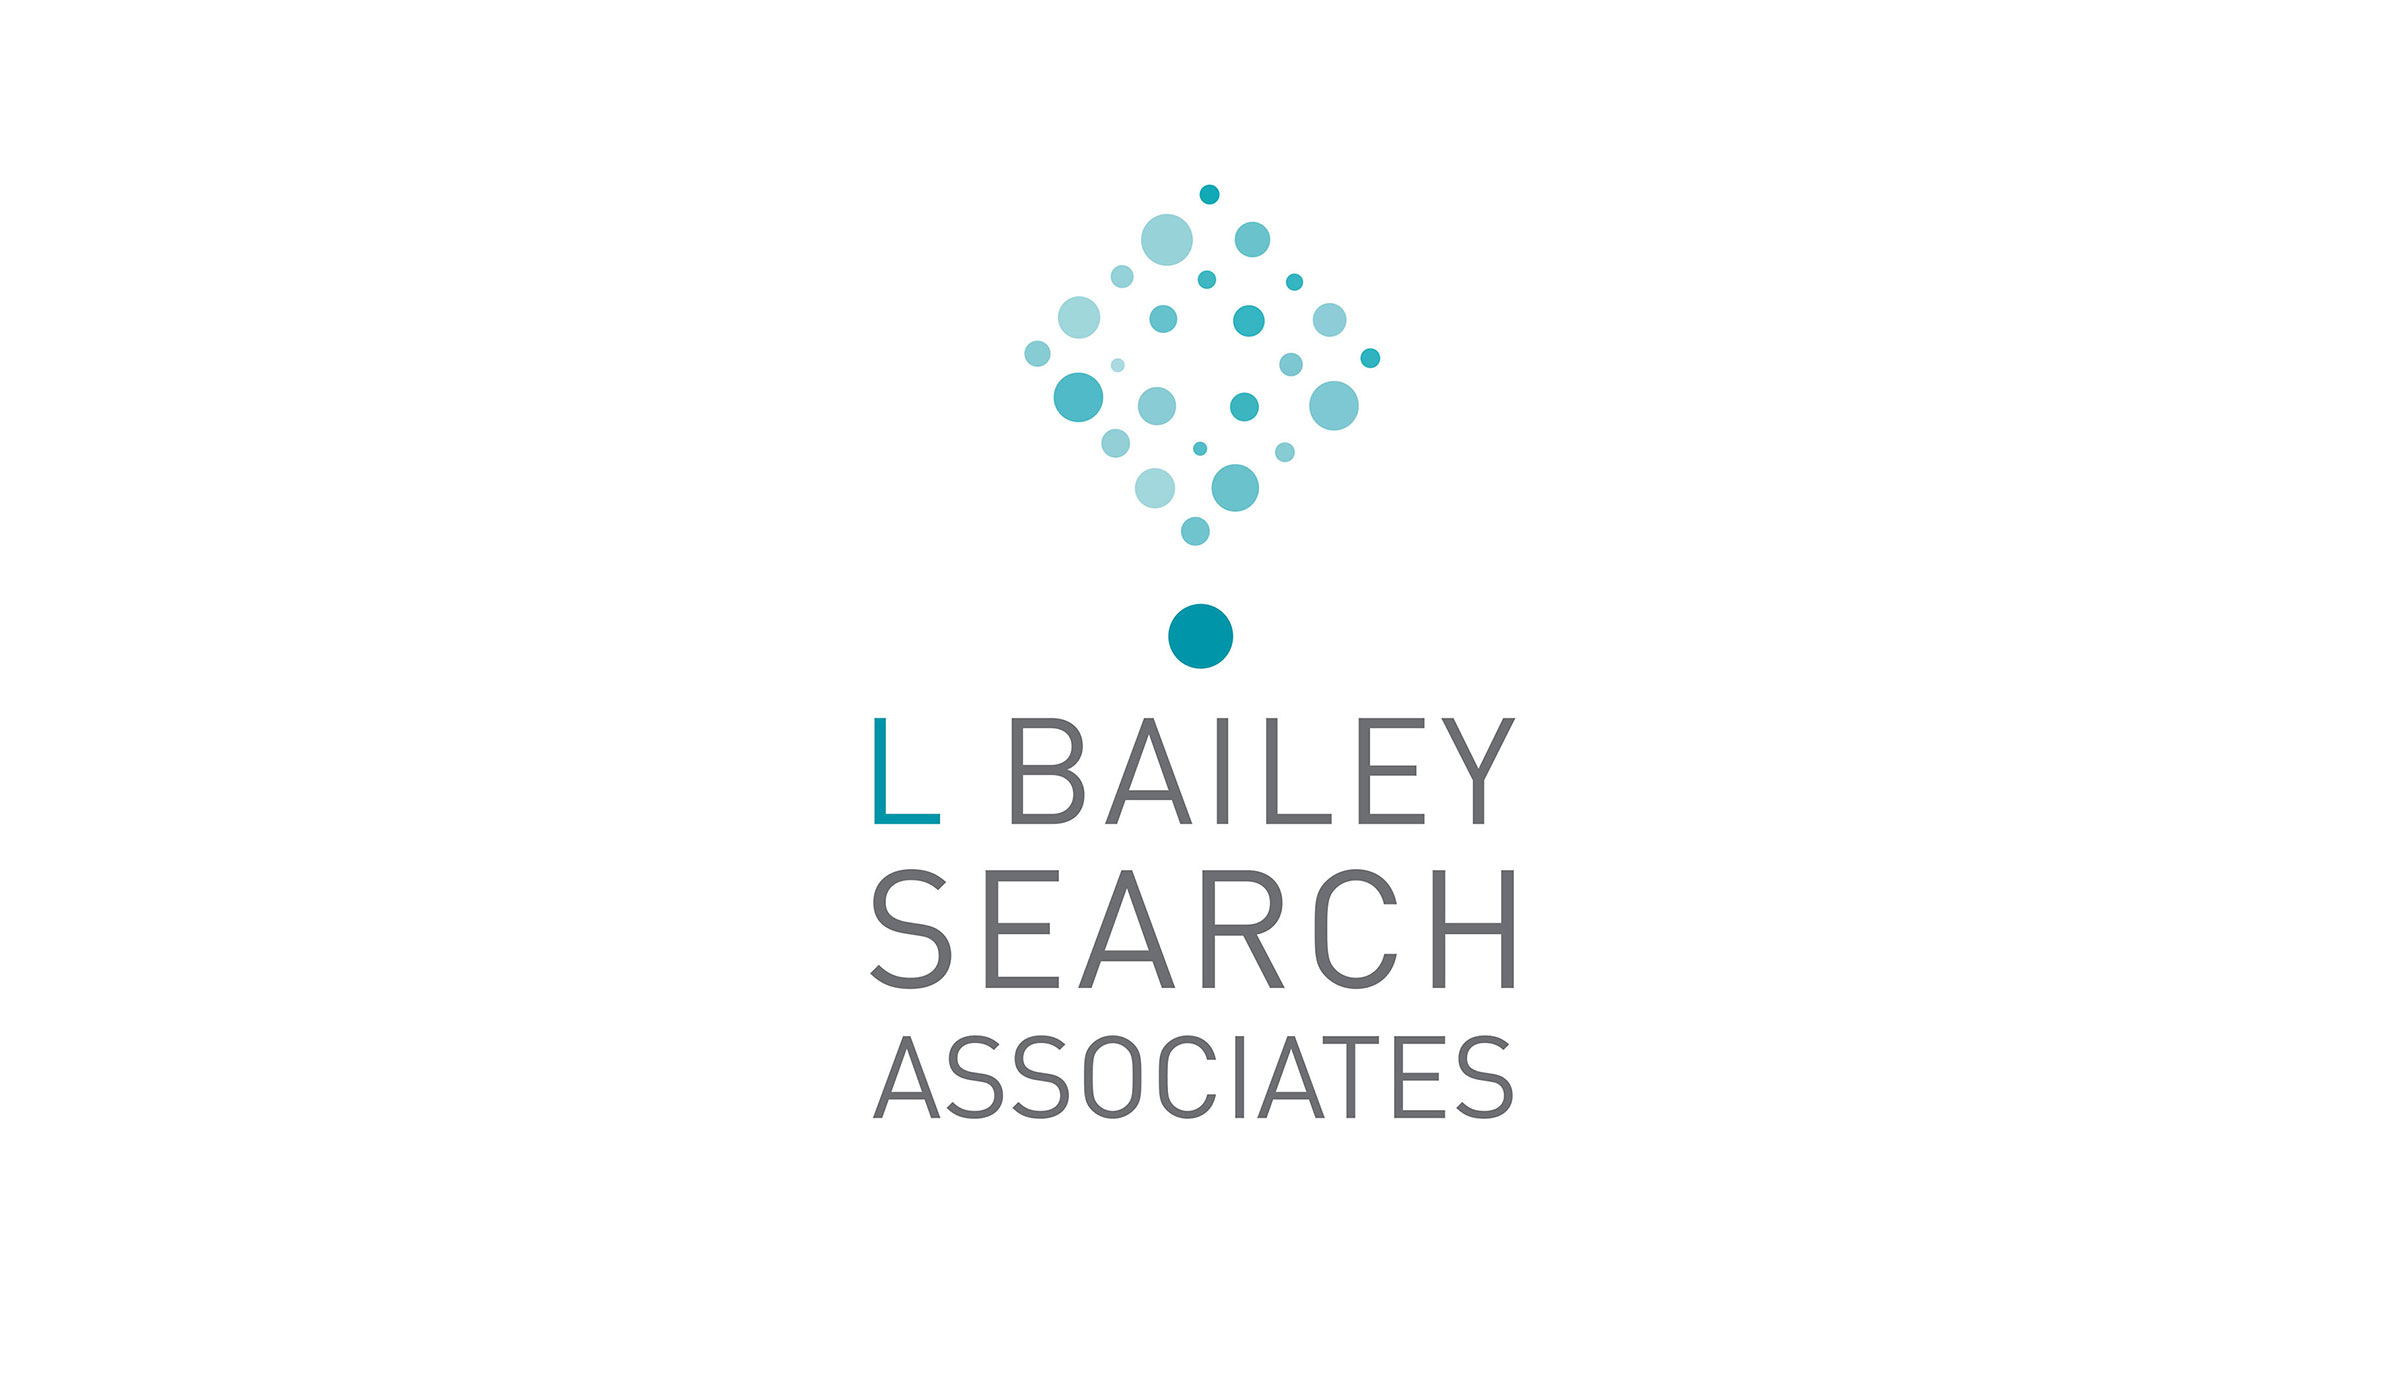 lbailey-search-logo